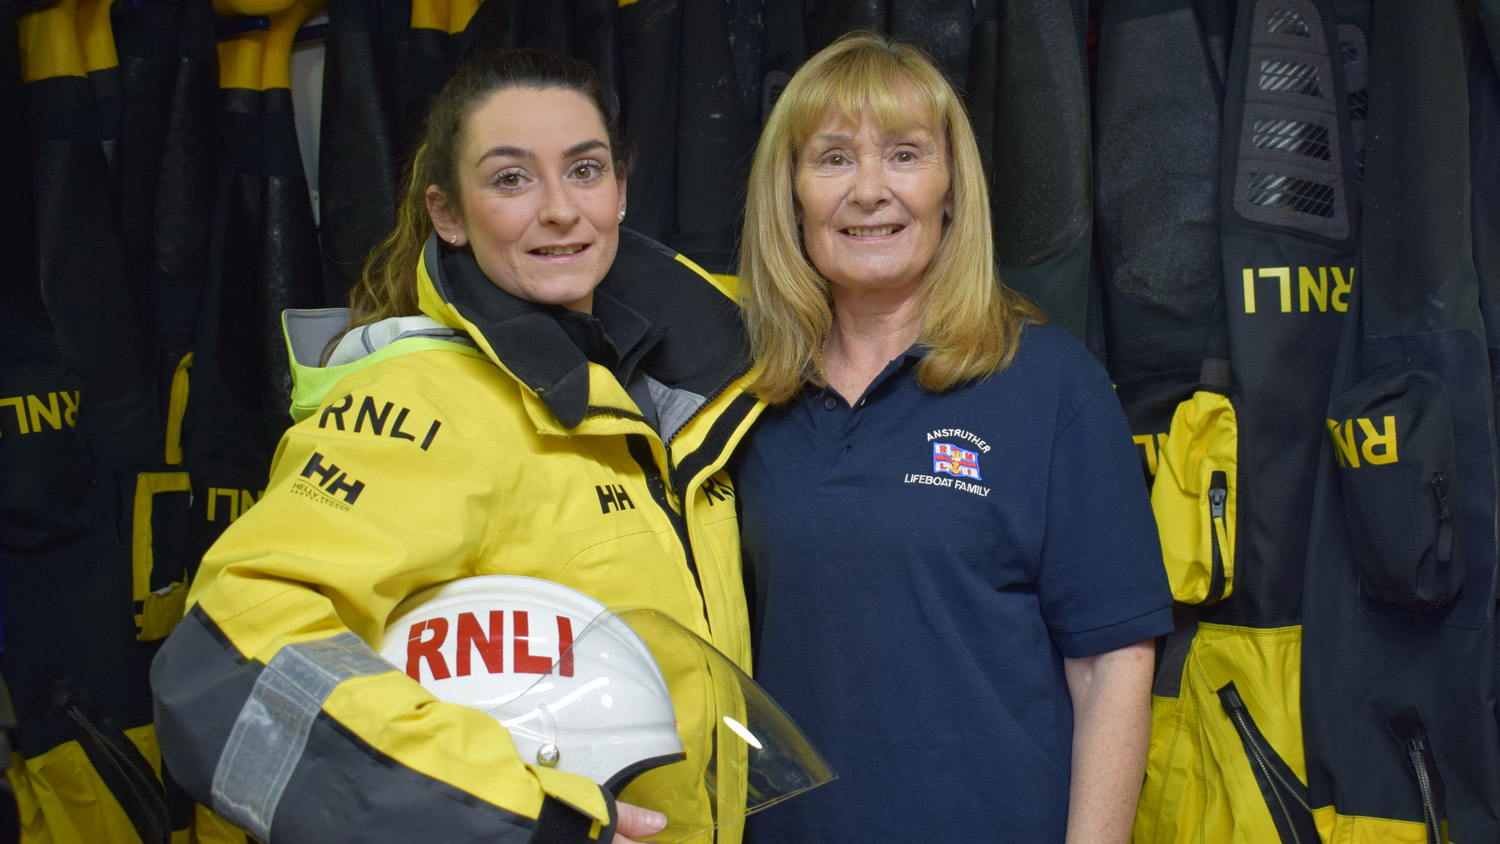 Anstruther Crew Member Louise Whiteman with her mum Cath